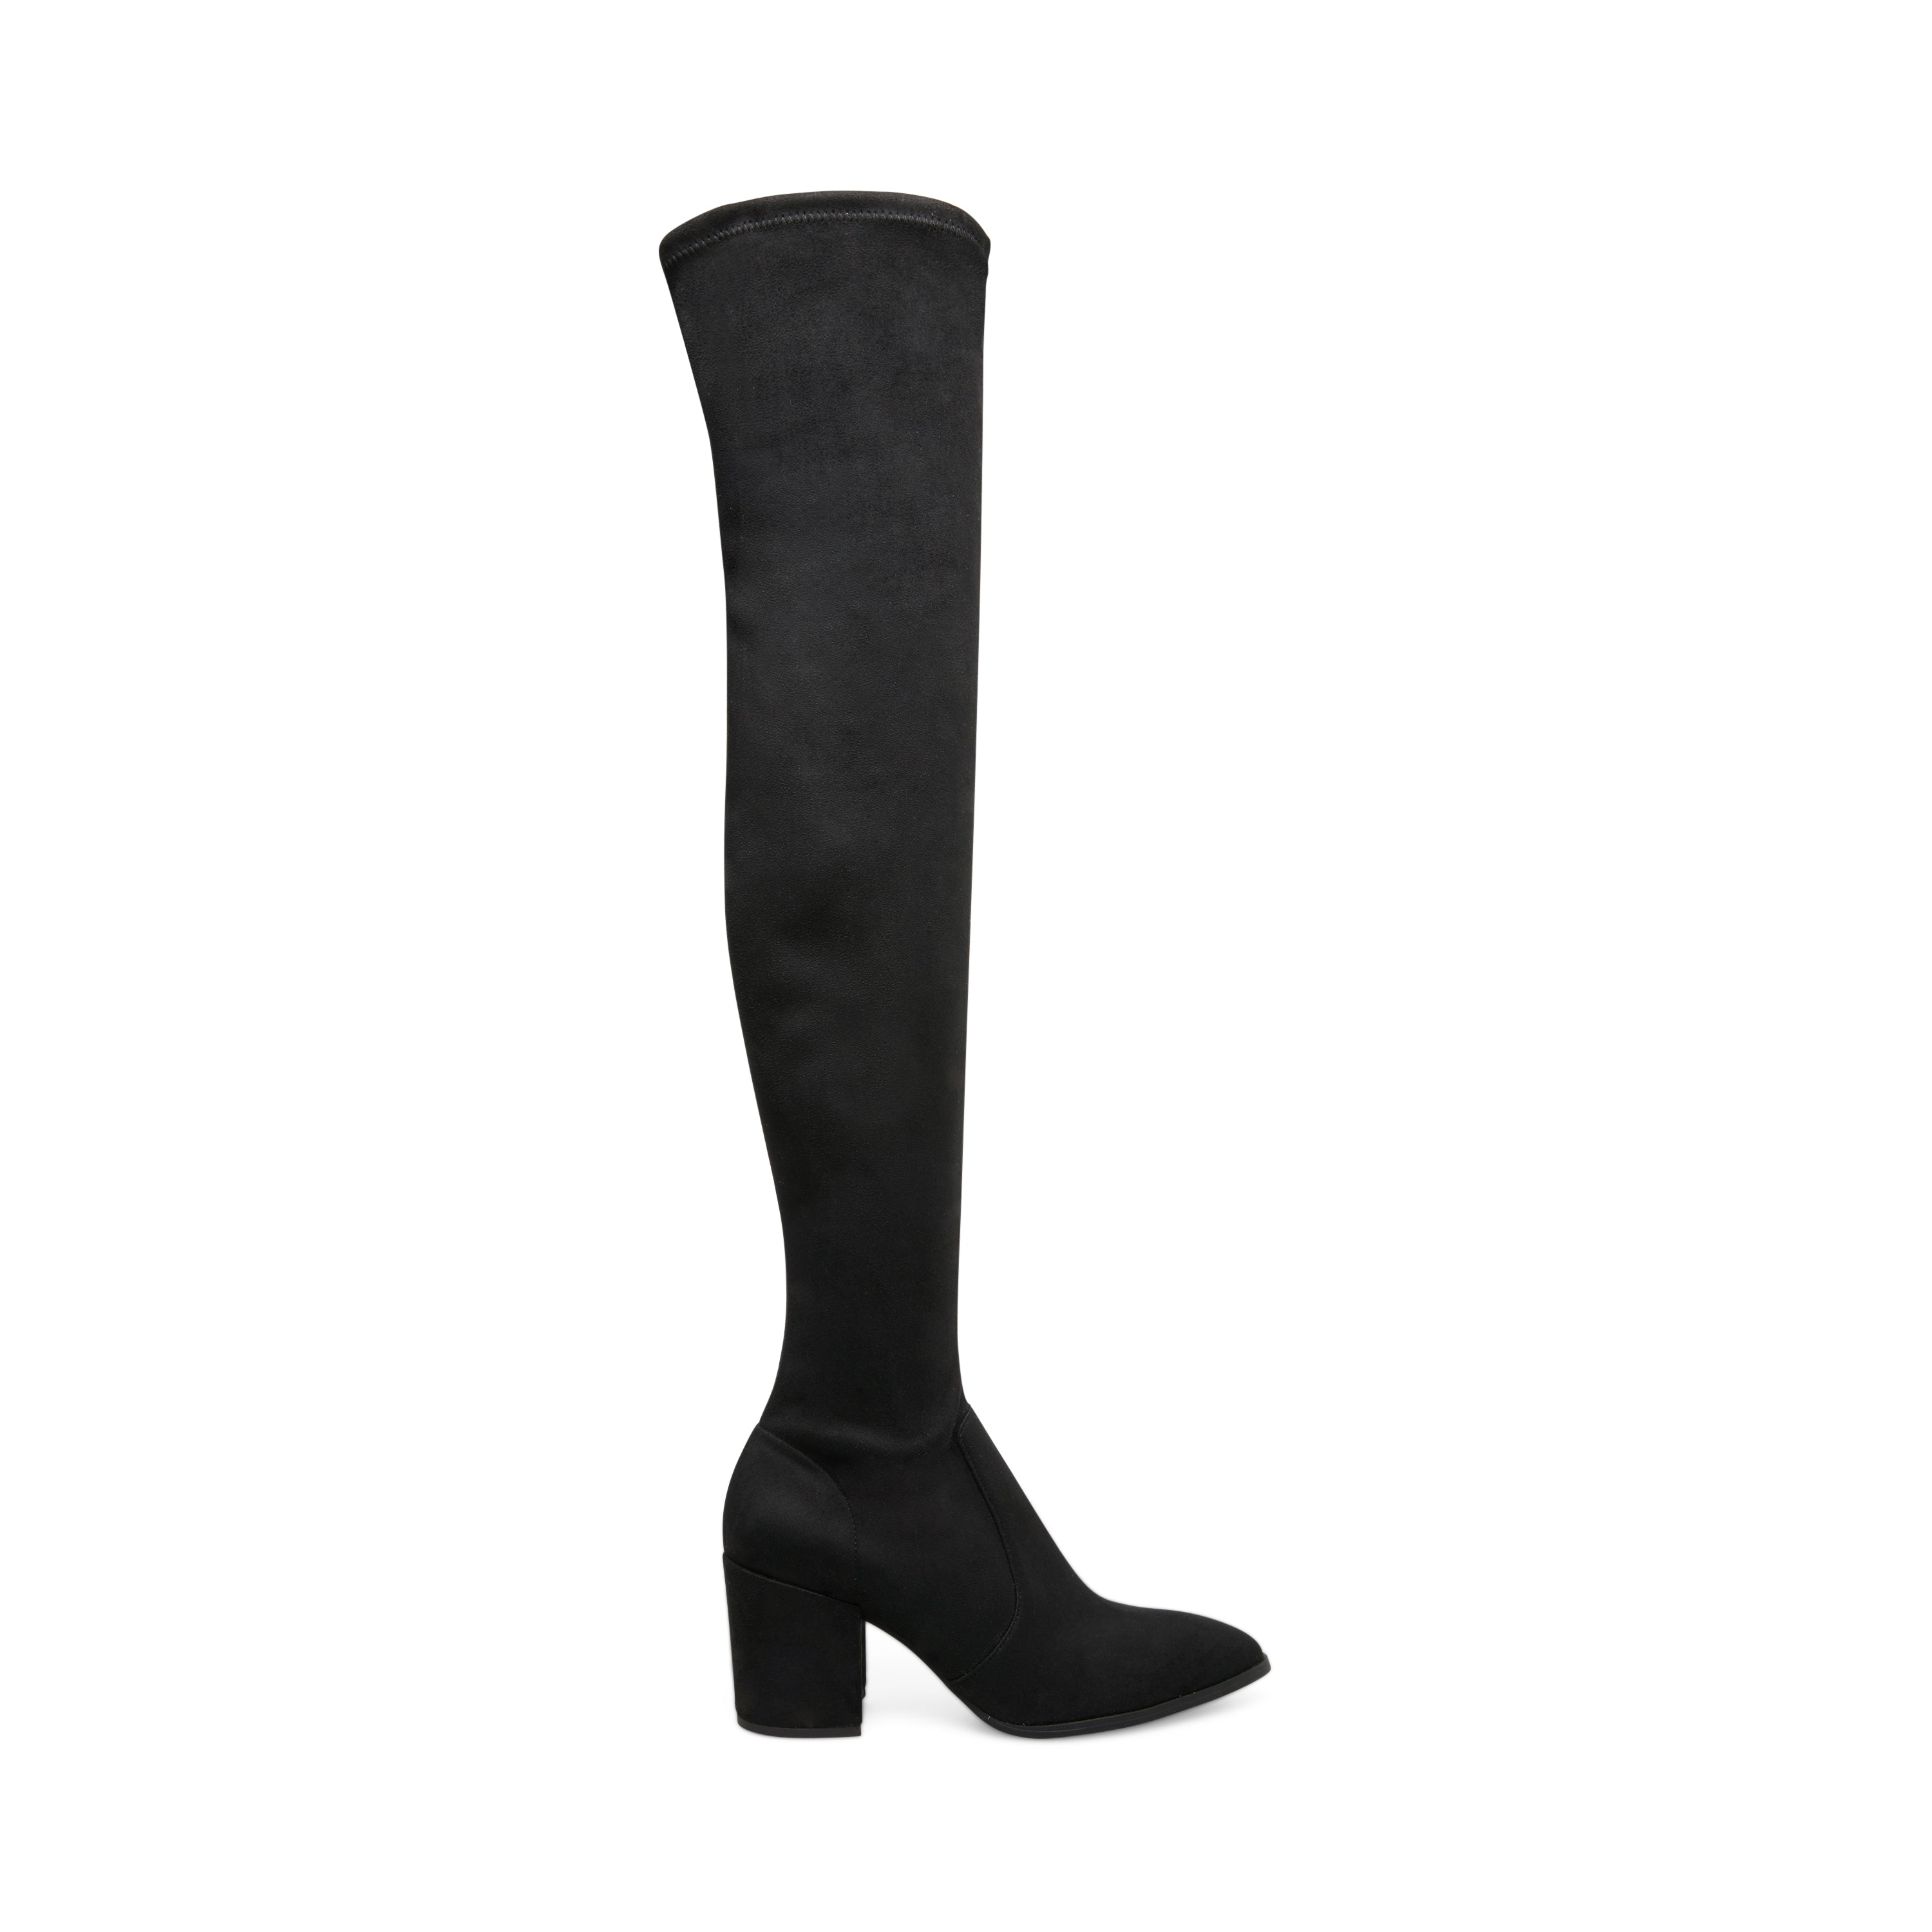 Steve Madden Women's Boots | Free and